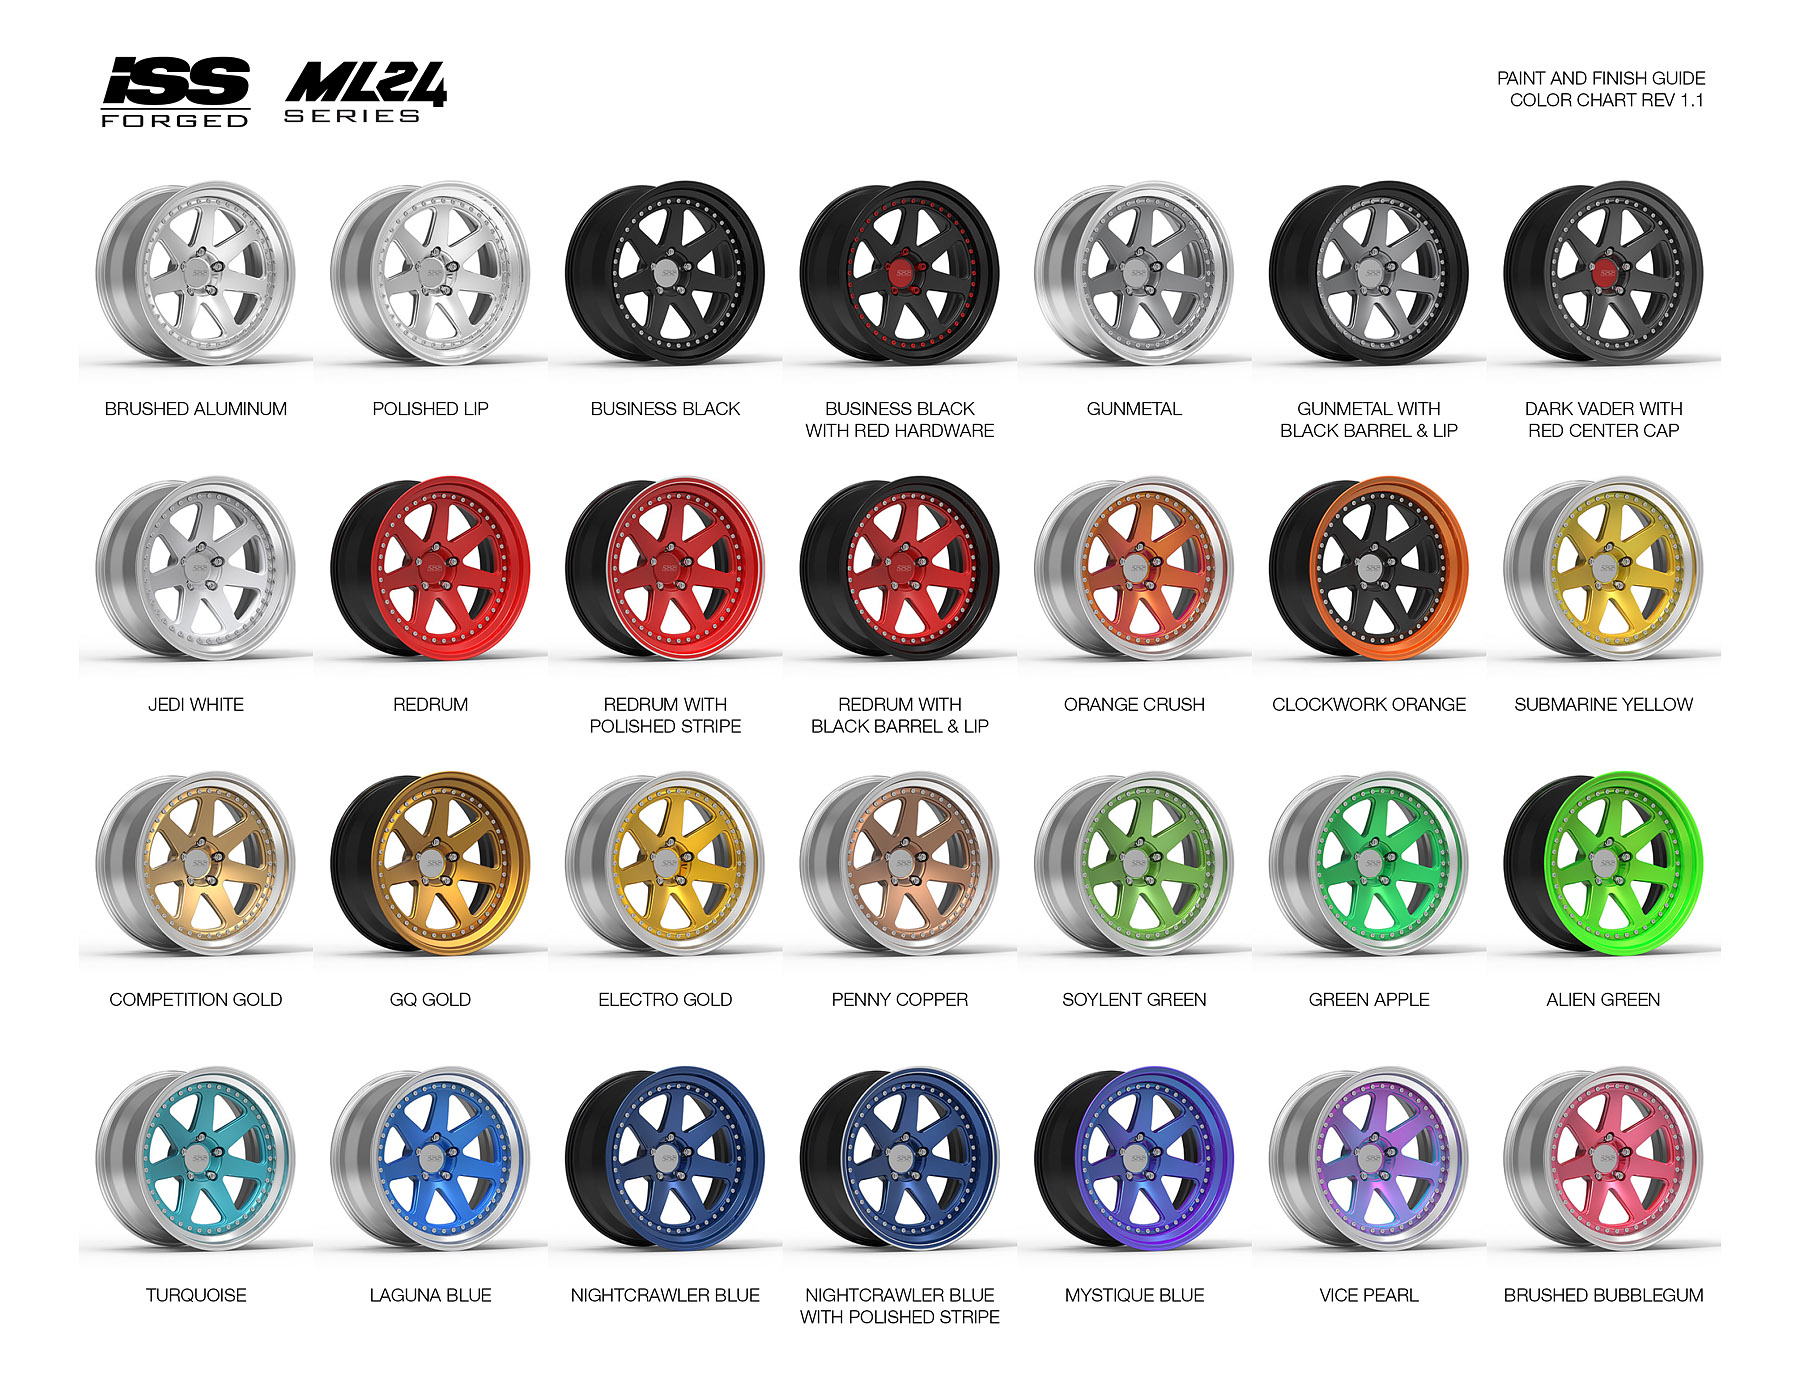 Iss Forged New Ml24 Series Of Wheels Redefining Art And Functionality